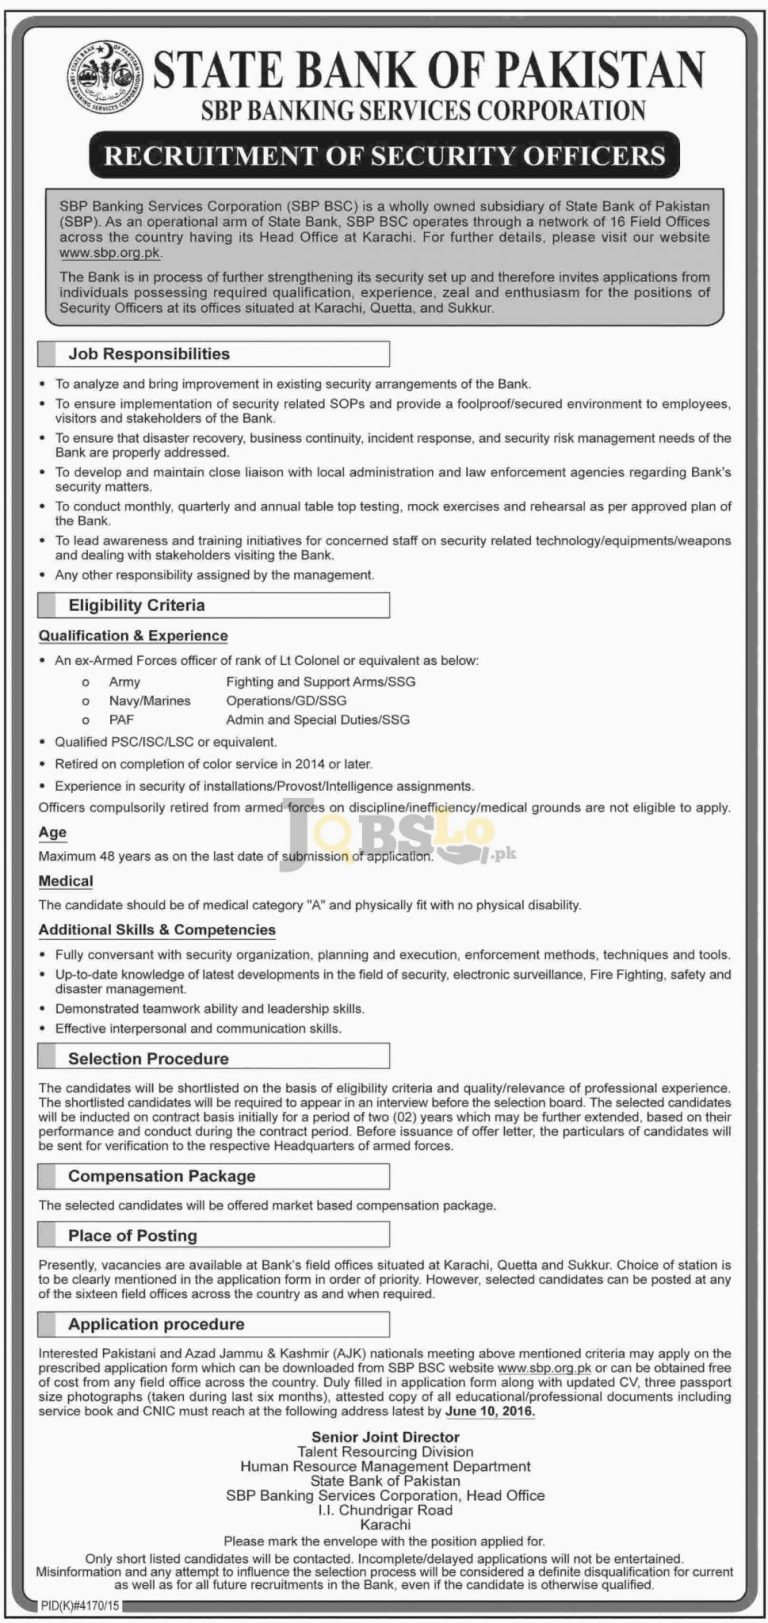 State Bank of Pakistan SBP Jobs May 2016 For Security Officers Latest Add